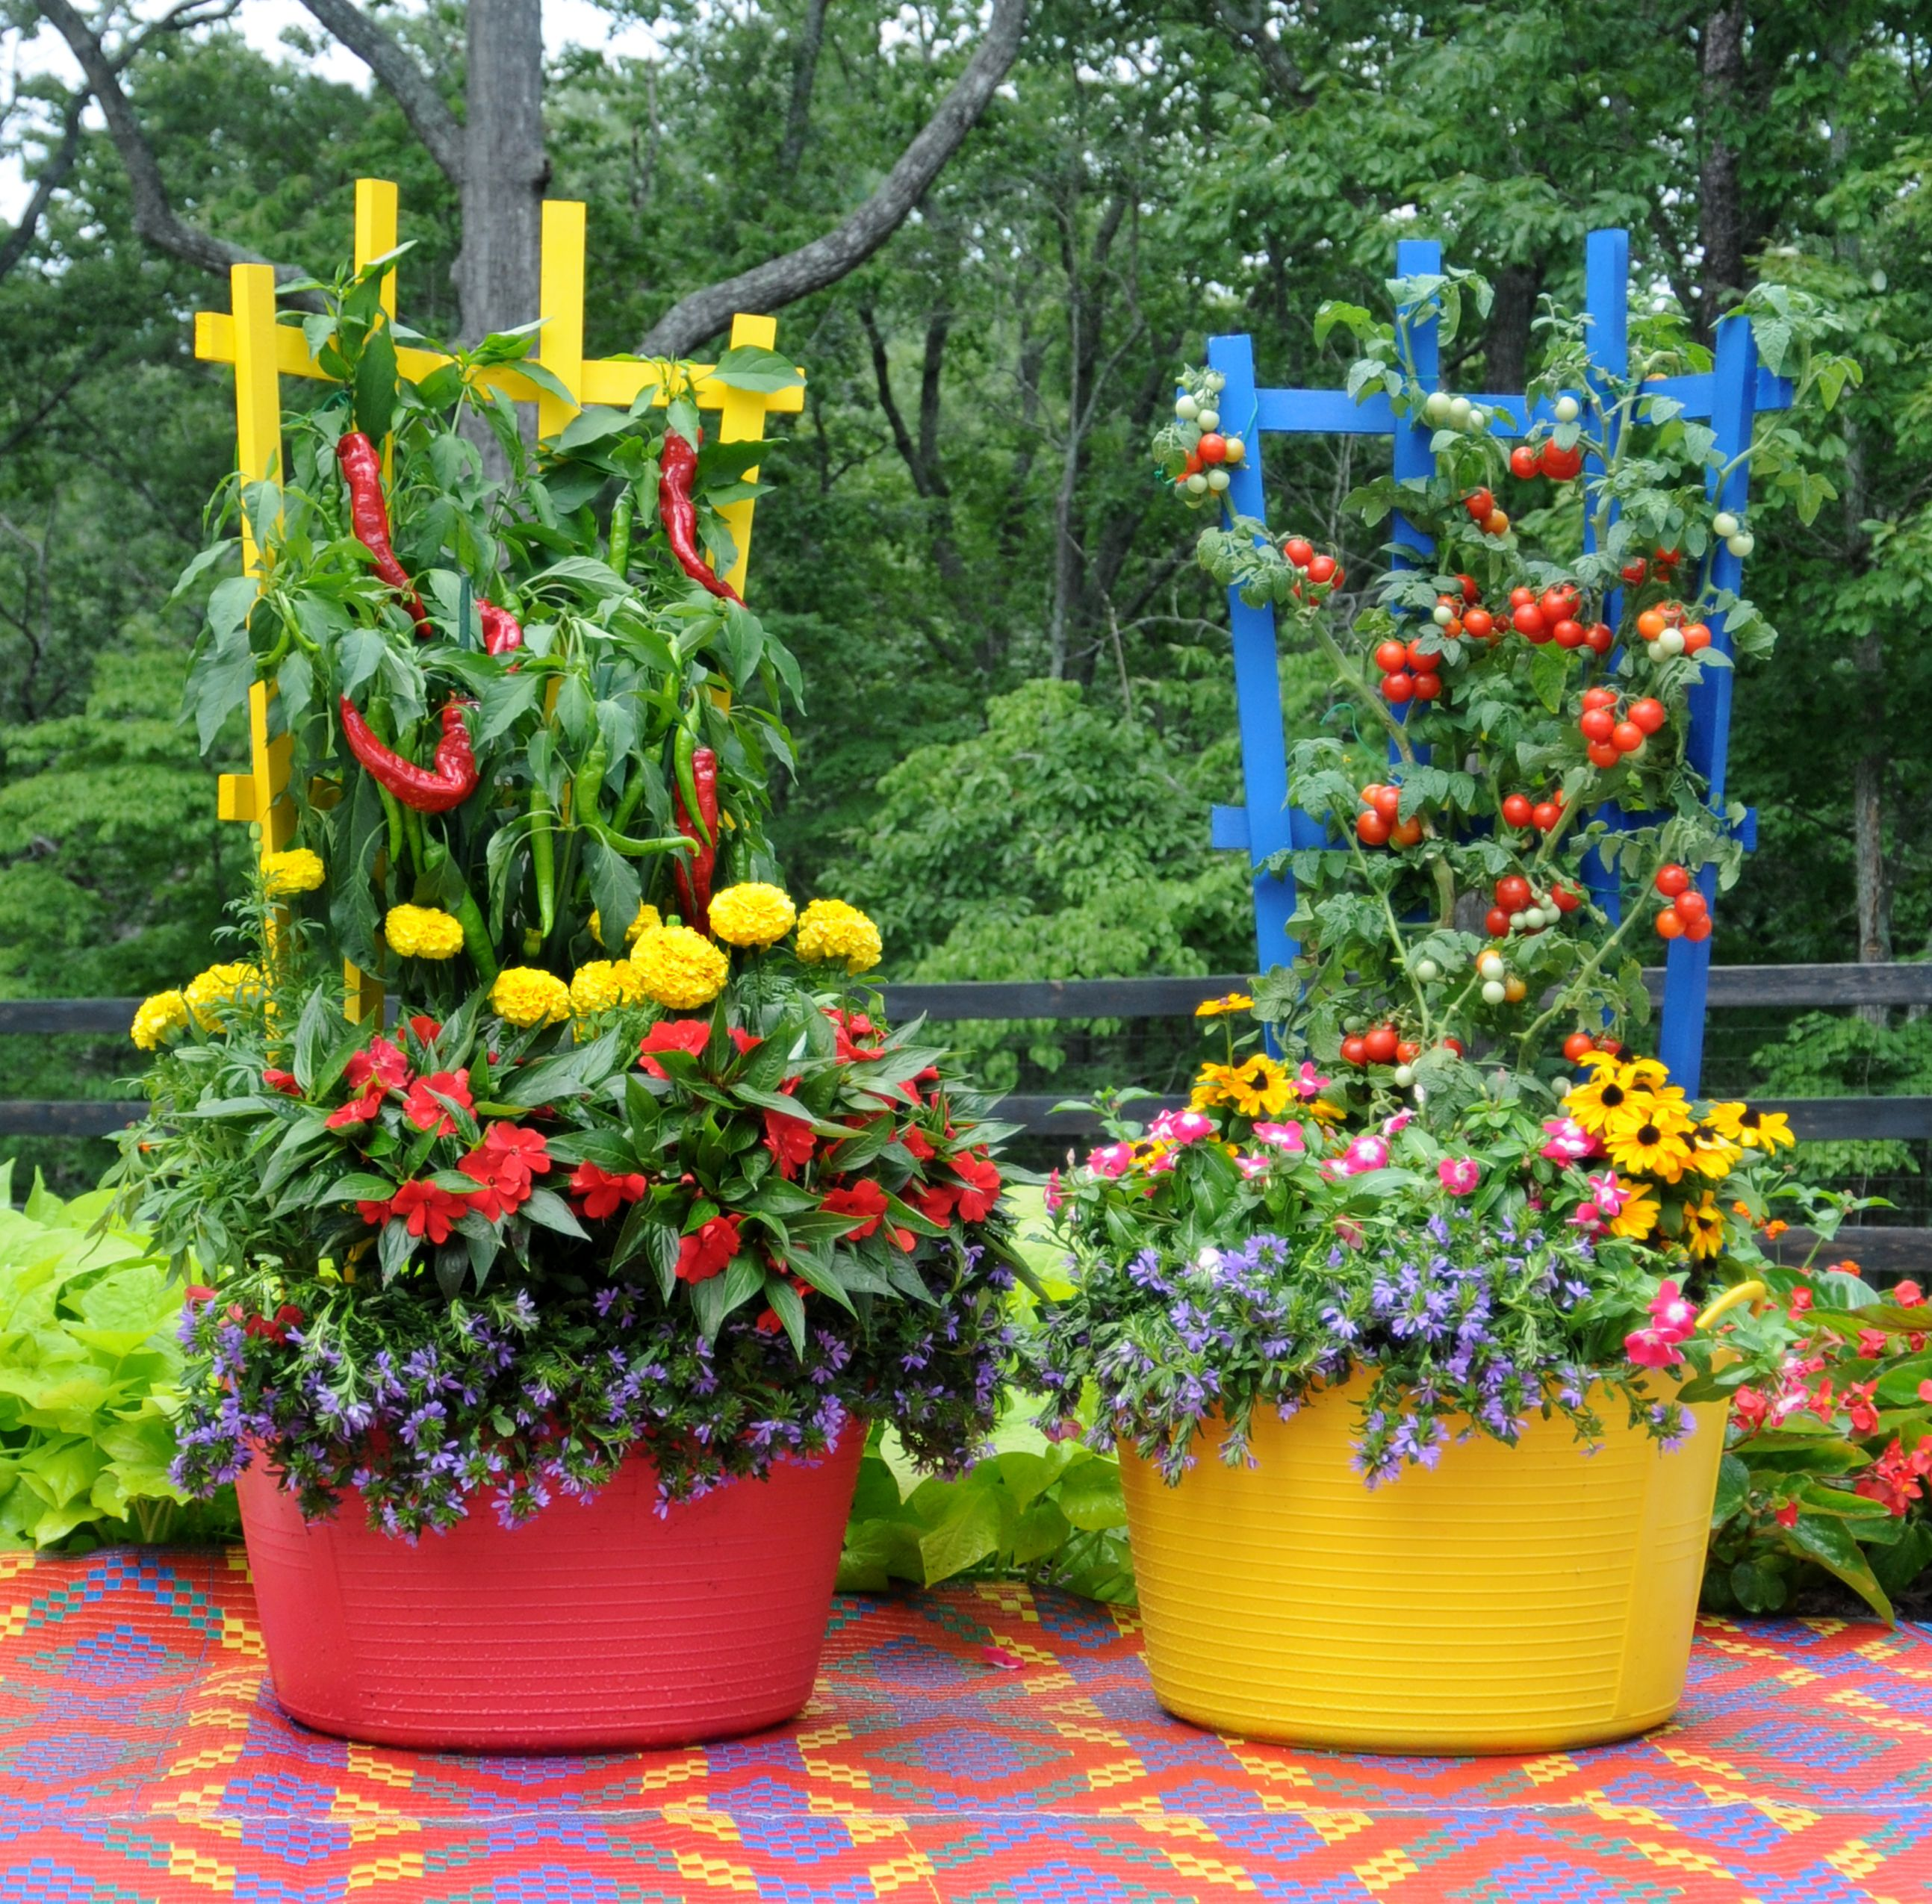 15 Creative Garden Ideas You Can Steal: Container Herb Garden, Herb